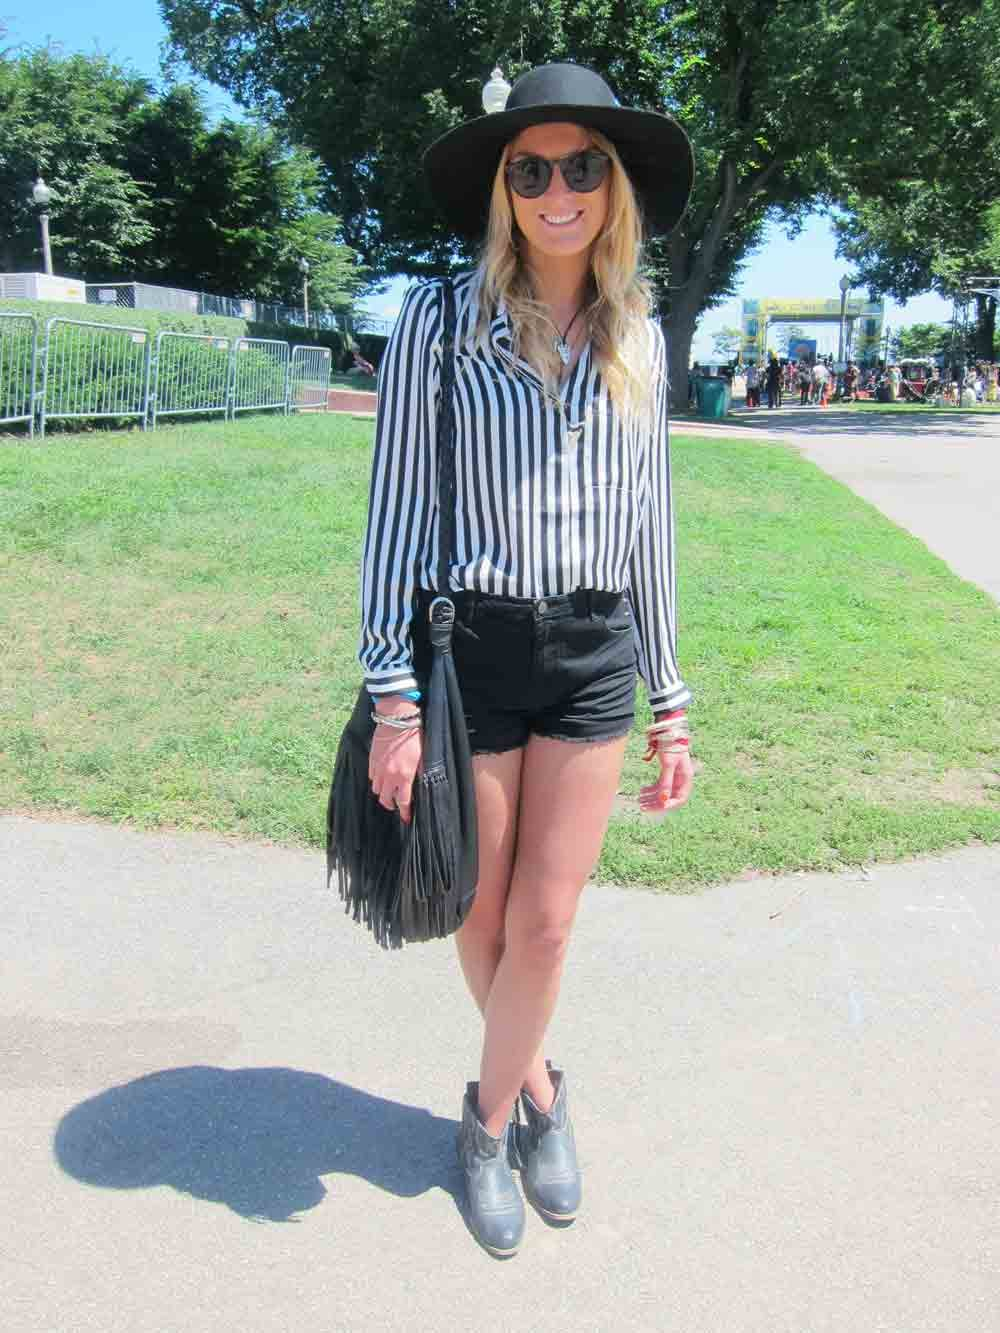 As with the rest of the world, black and white is a color combination not lost on Lollapalooza fans. Anya played up the trend with a vintage shirt, H&M shorts, and an American Apparel floppy hat.